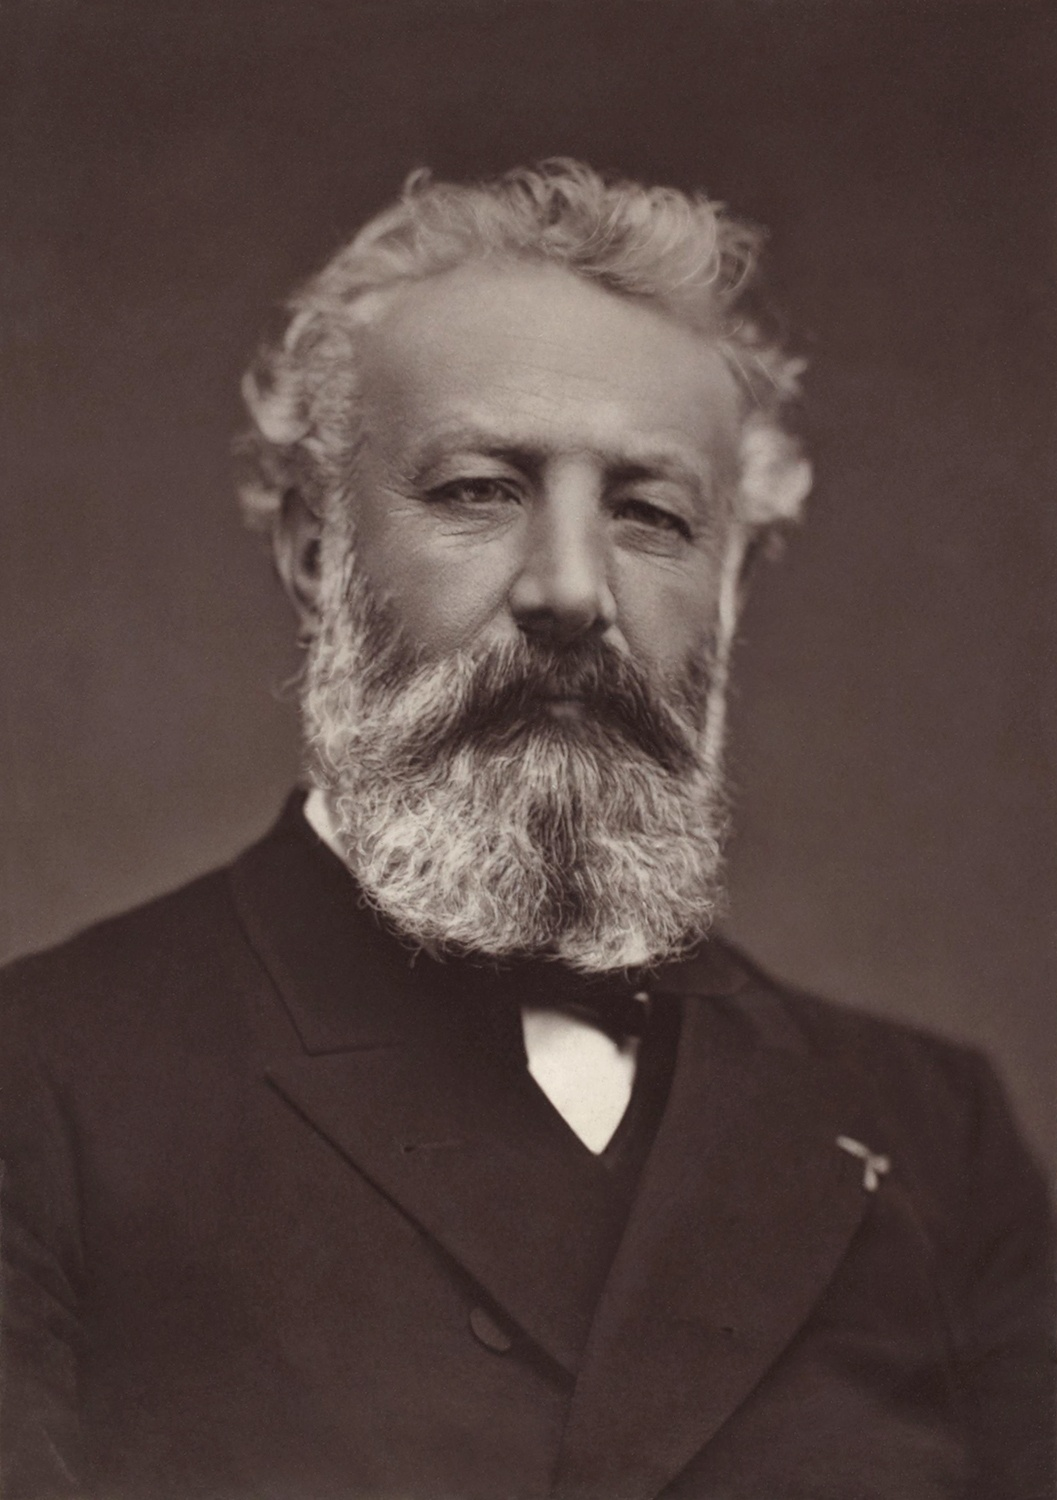 Print of Jules Verne, 1884. Courtesy of Wikimedia Commons.